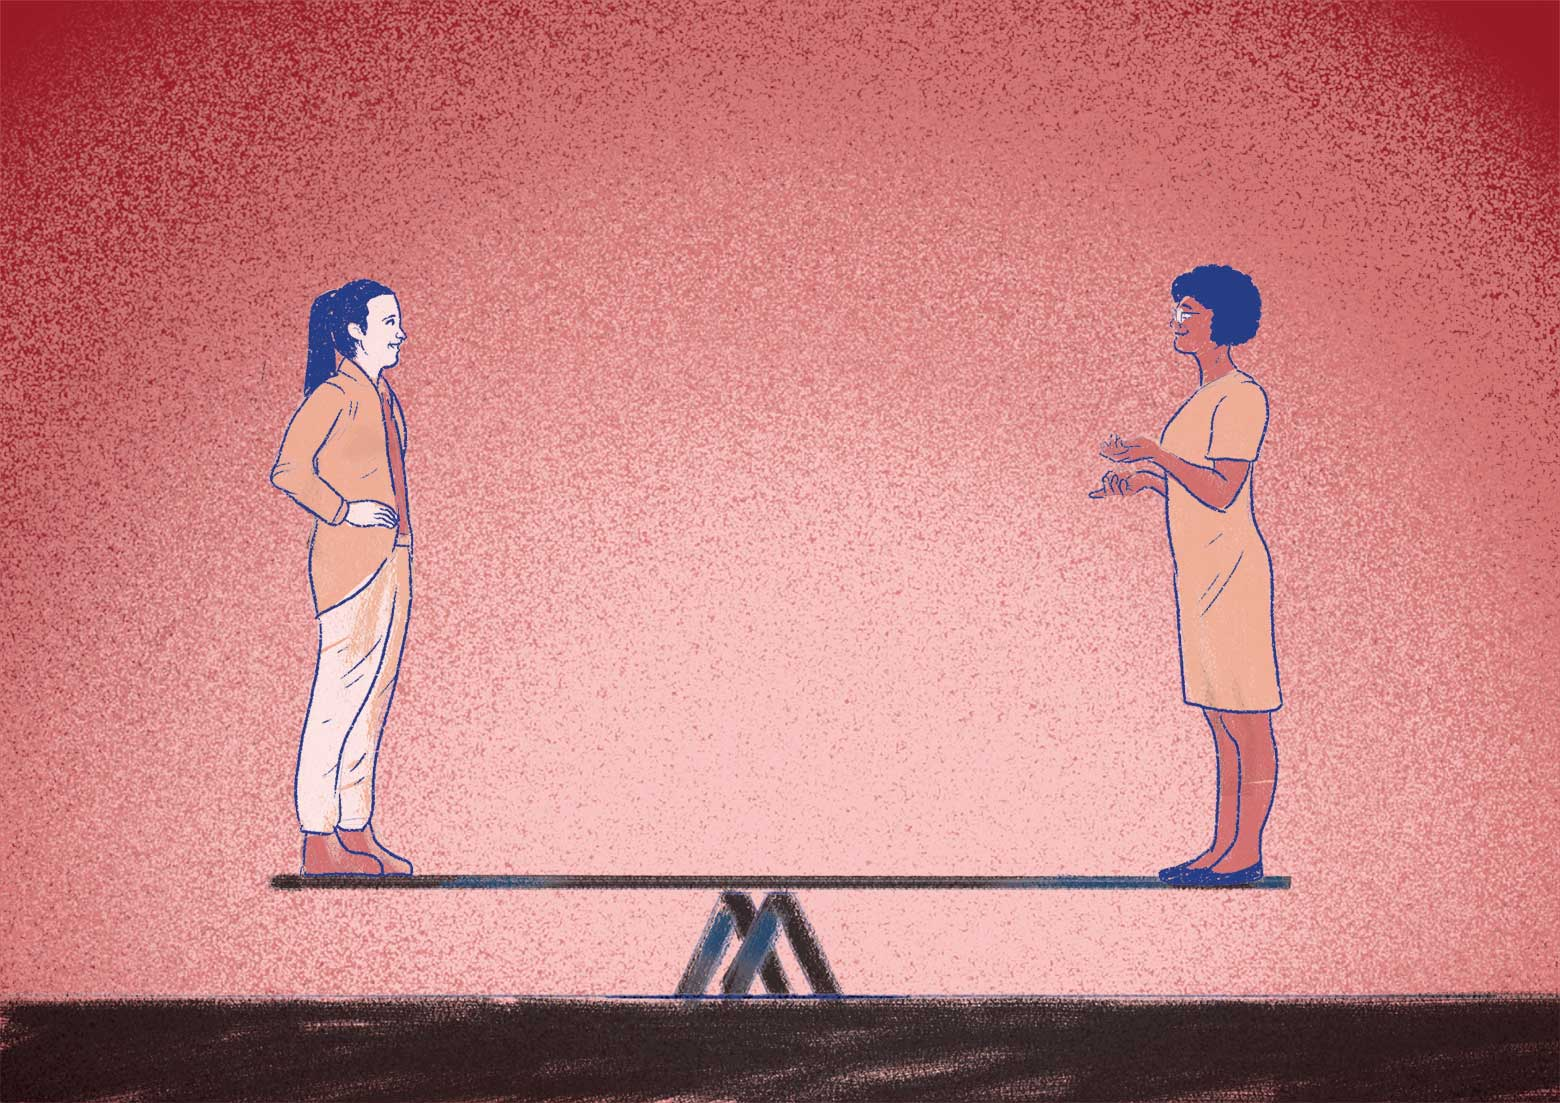 illustration of 2 people standing opposite each other on a seesaw